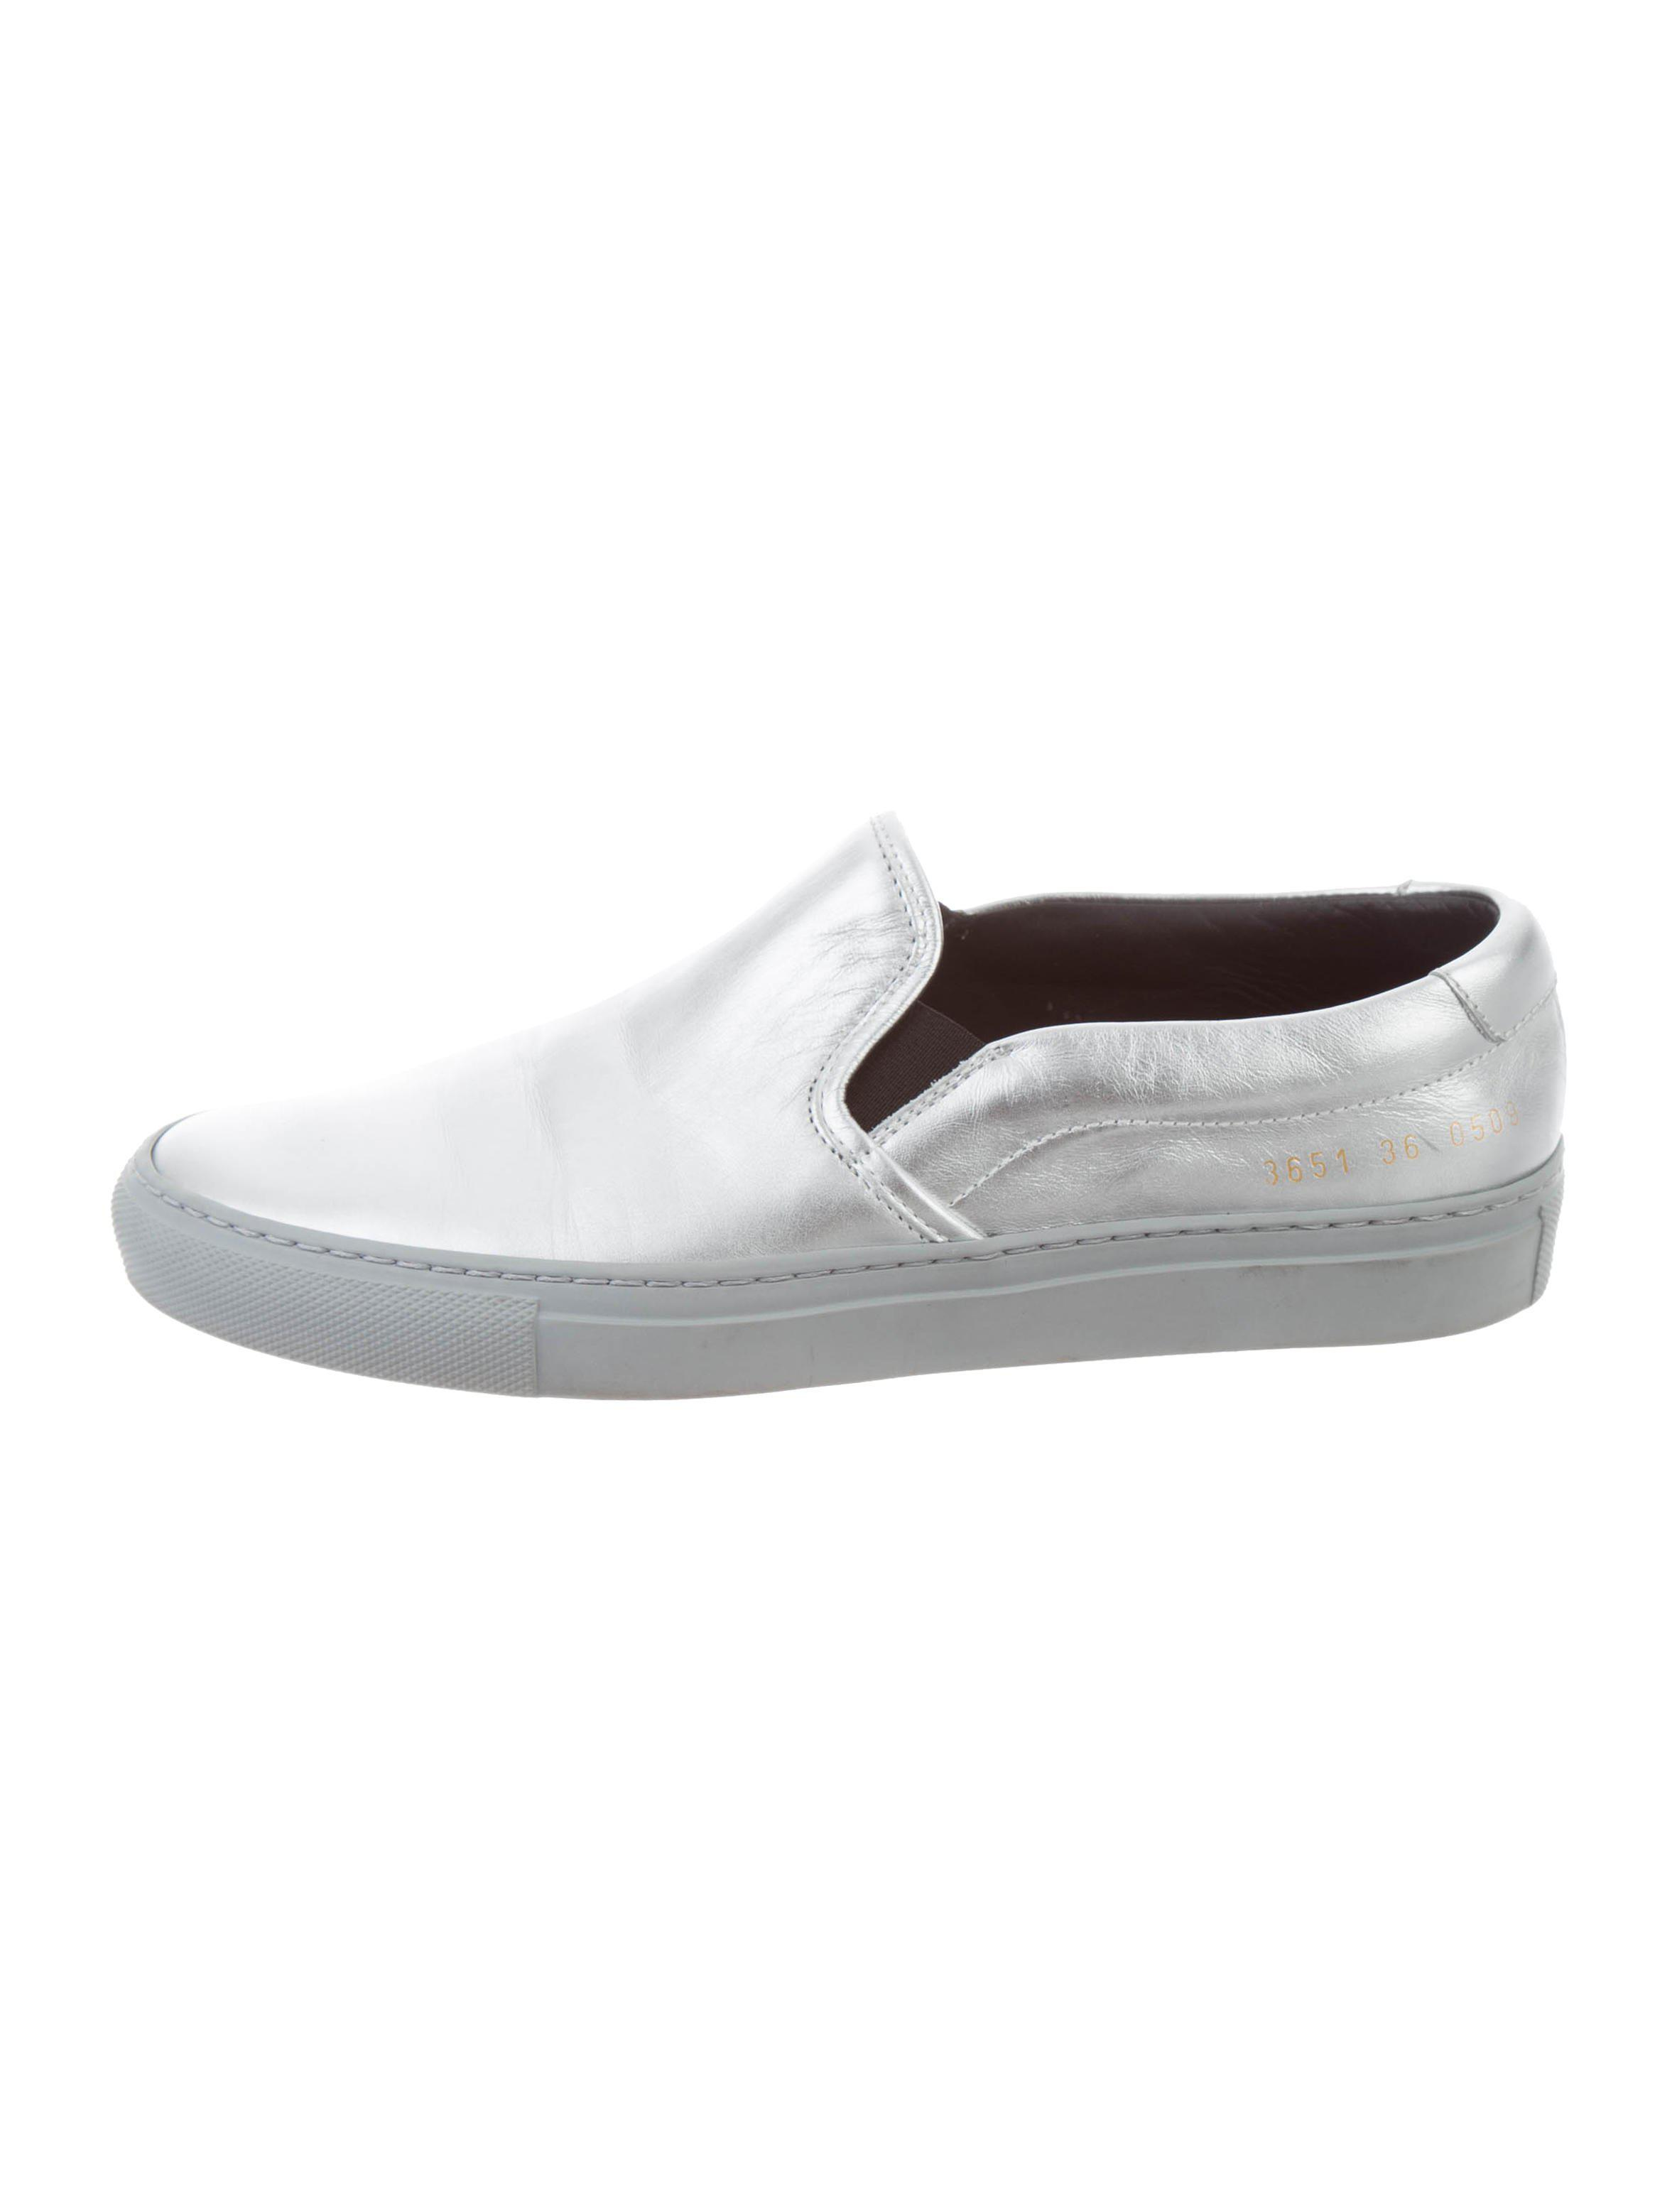 ae263e49ce35 Lyst - Common Projects Slip-on Sneakers Silver in Metallic